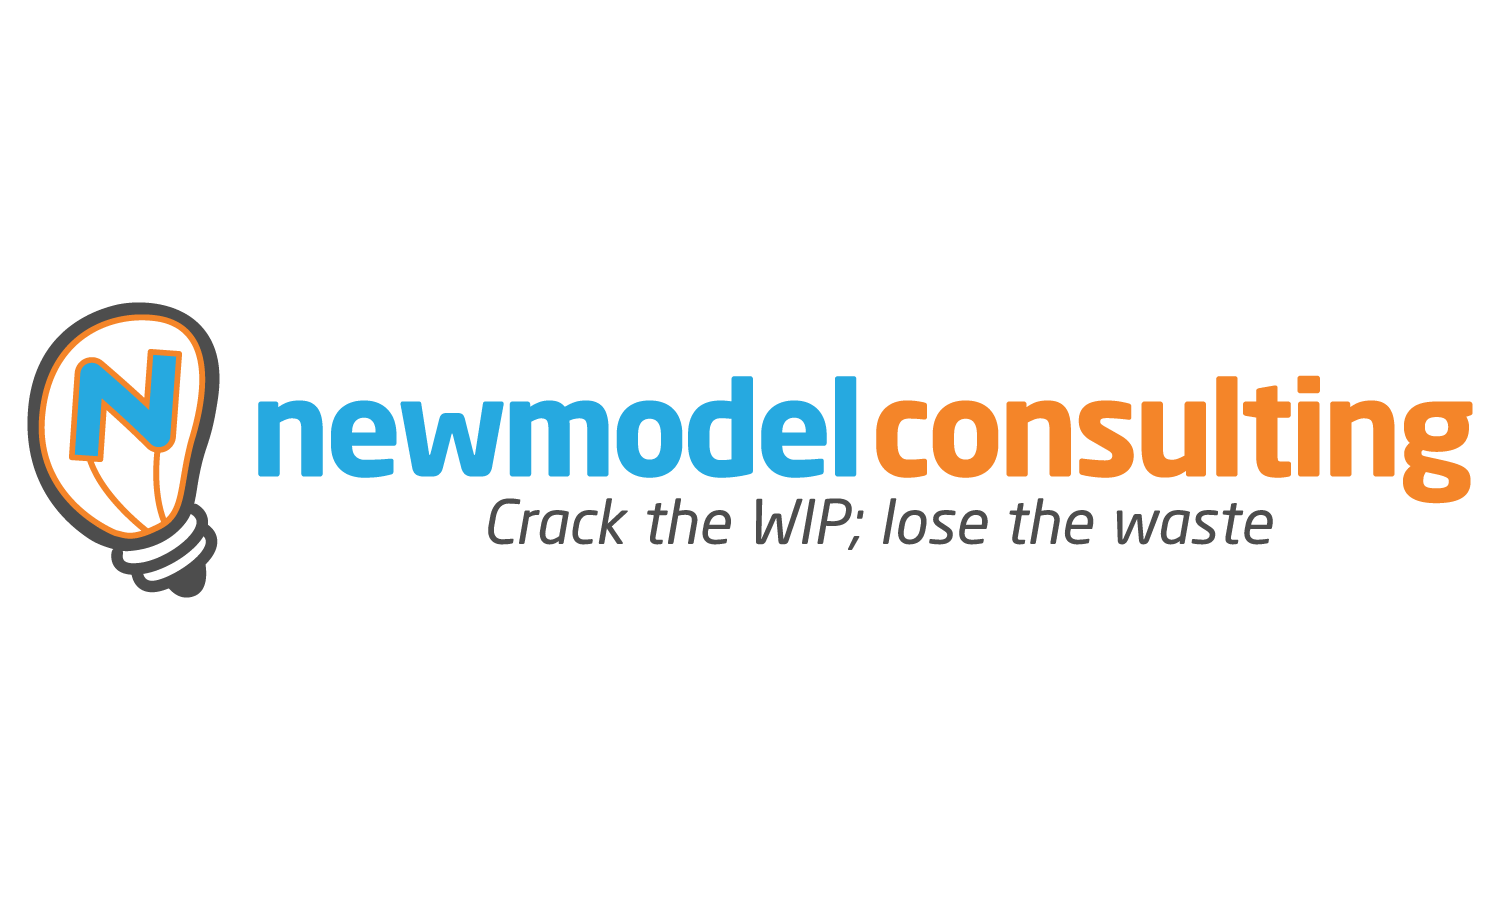 newmodel consulting